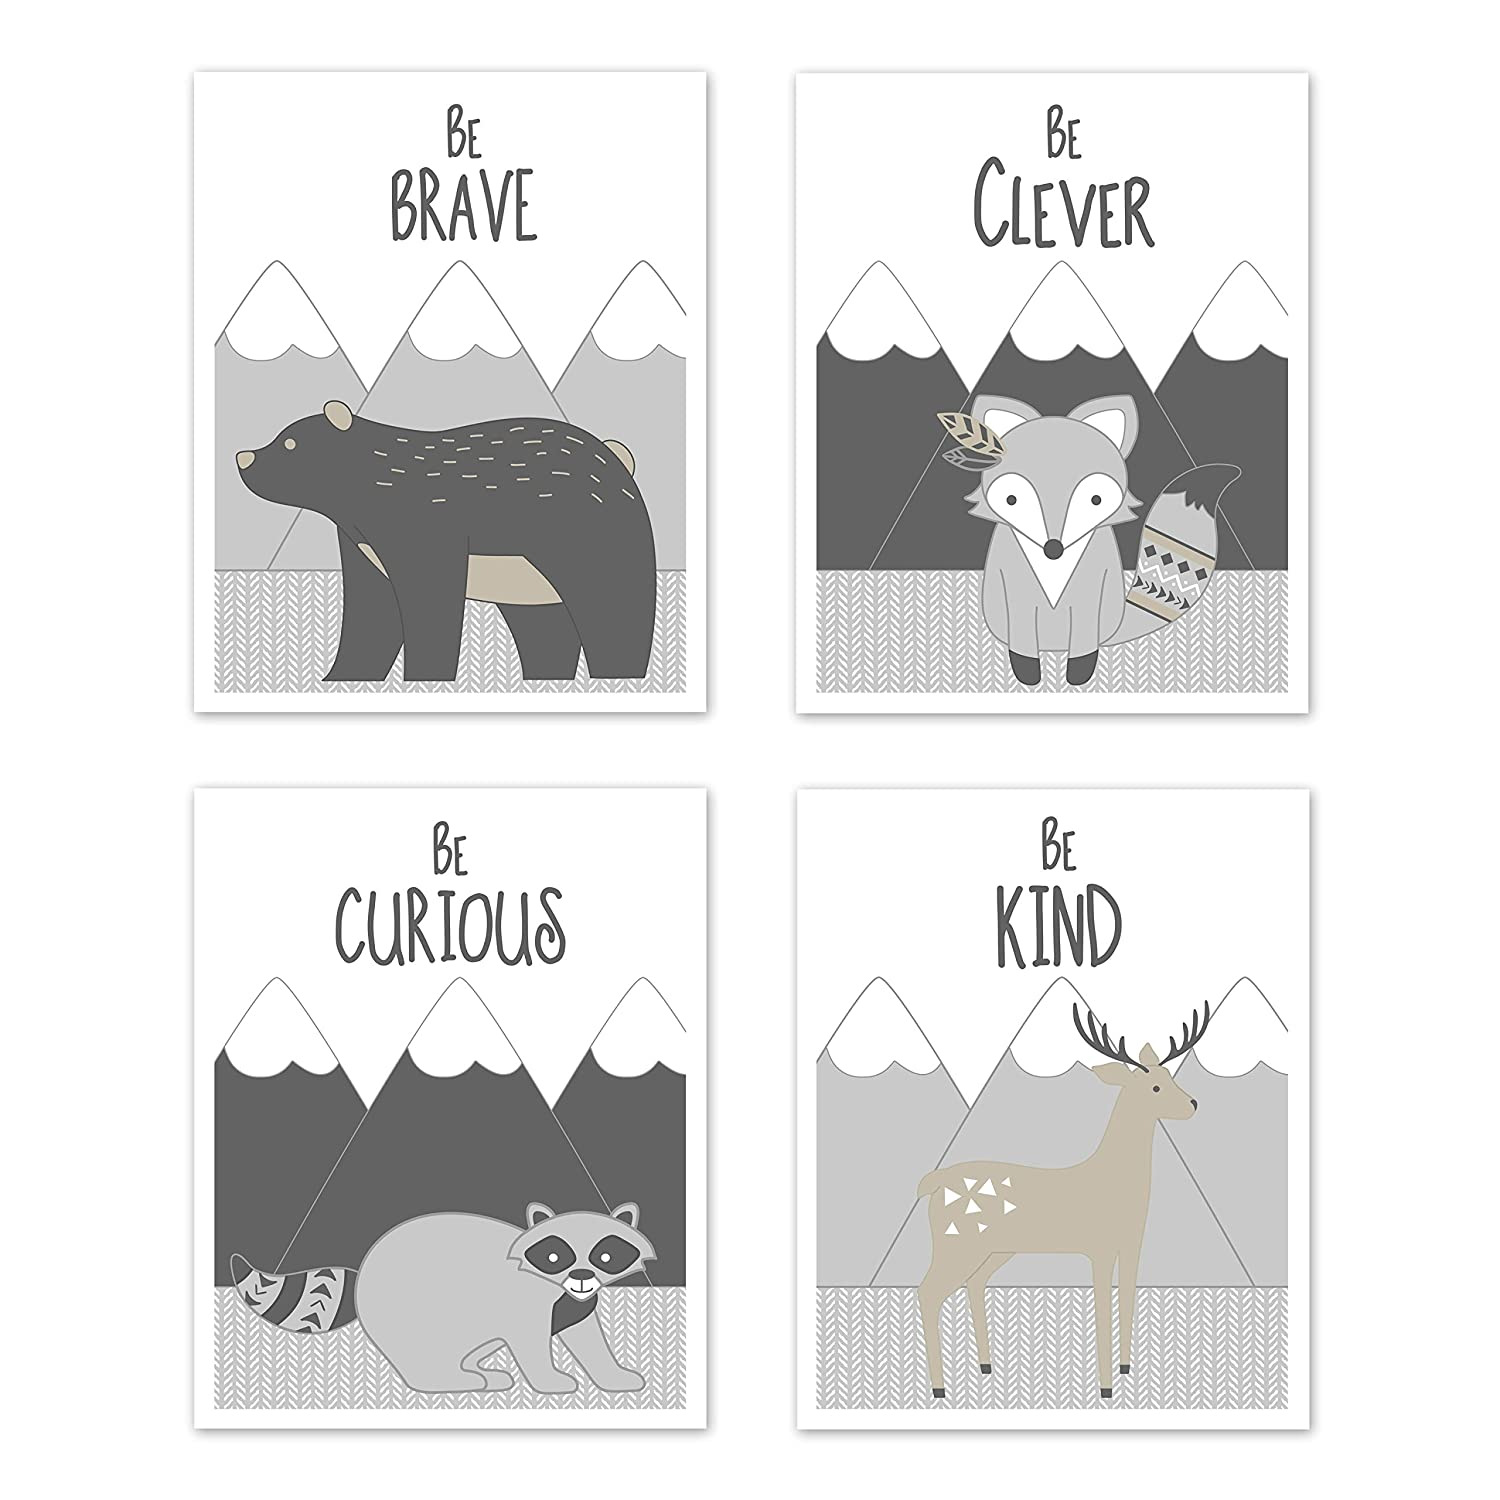 Sweet Jojo Designs Beige Grey White Boho Mountain Forest Animal Deer Fox Bear Wall Art Prints Room Decor for Baby Nursery Kids for Gray Woodland Friends Collection-Set of 4-Brave Clever Curious Kind